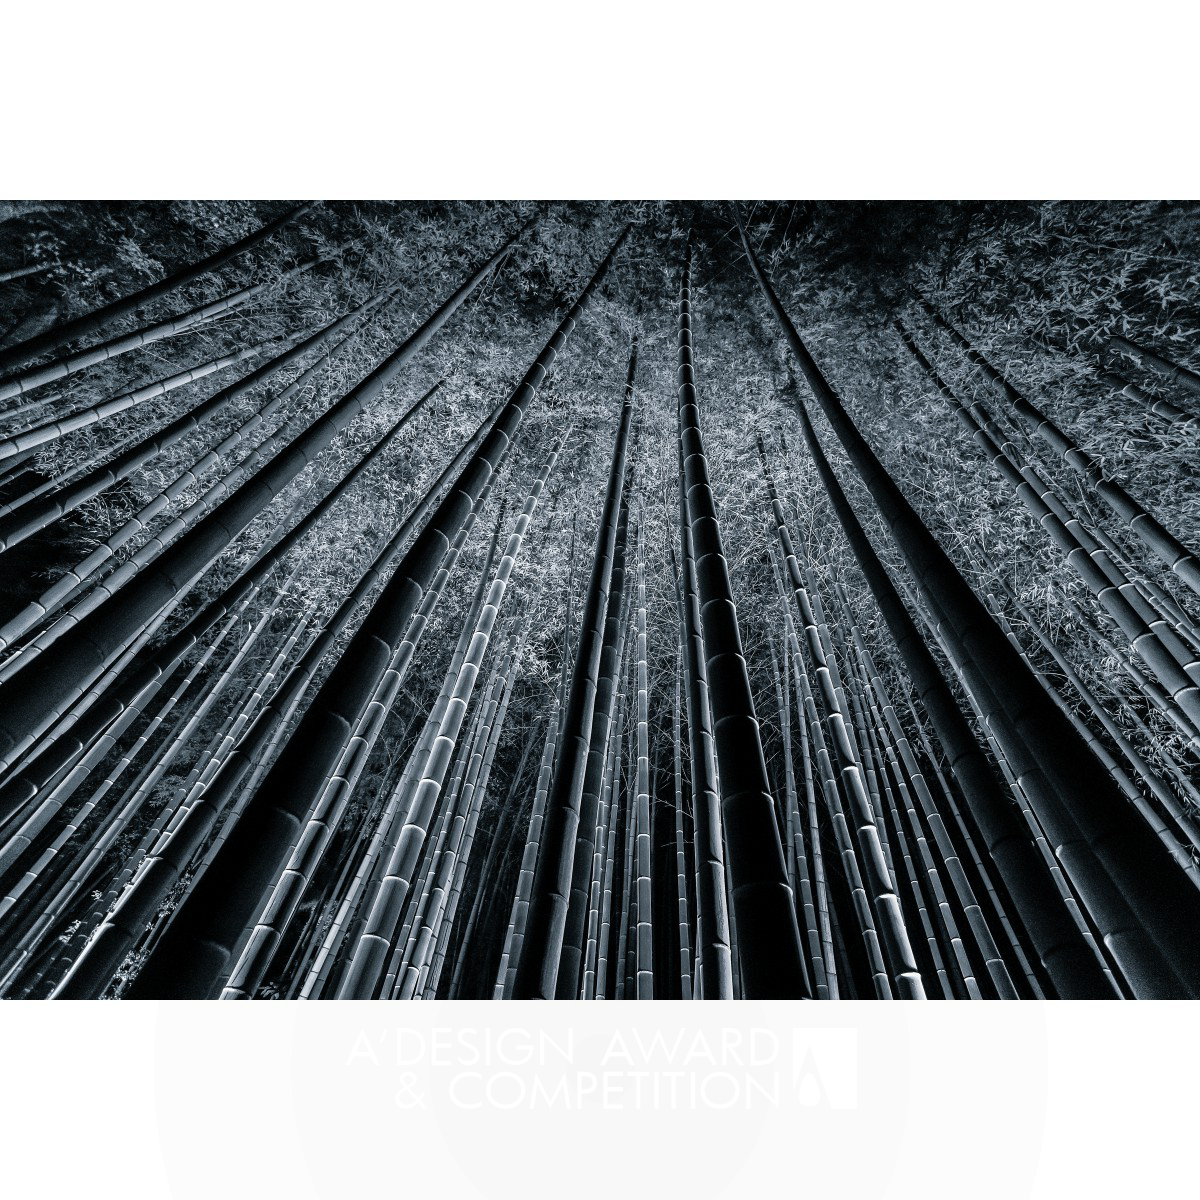 Bamboo Forest Fine Art Photography